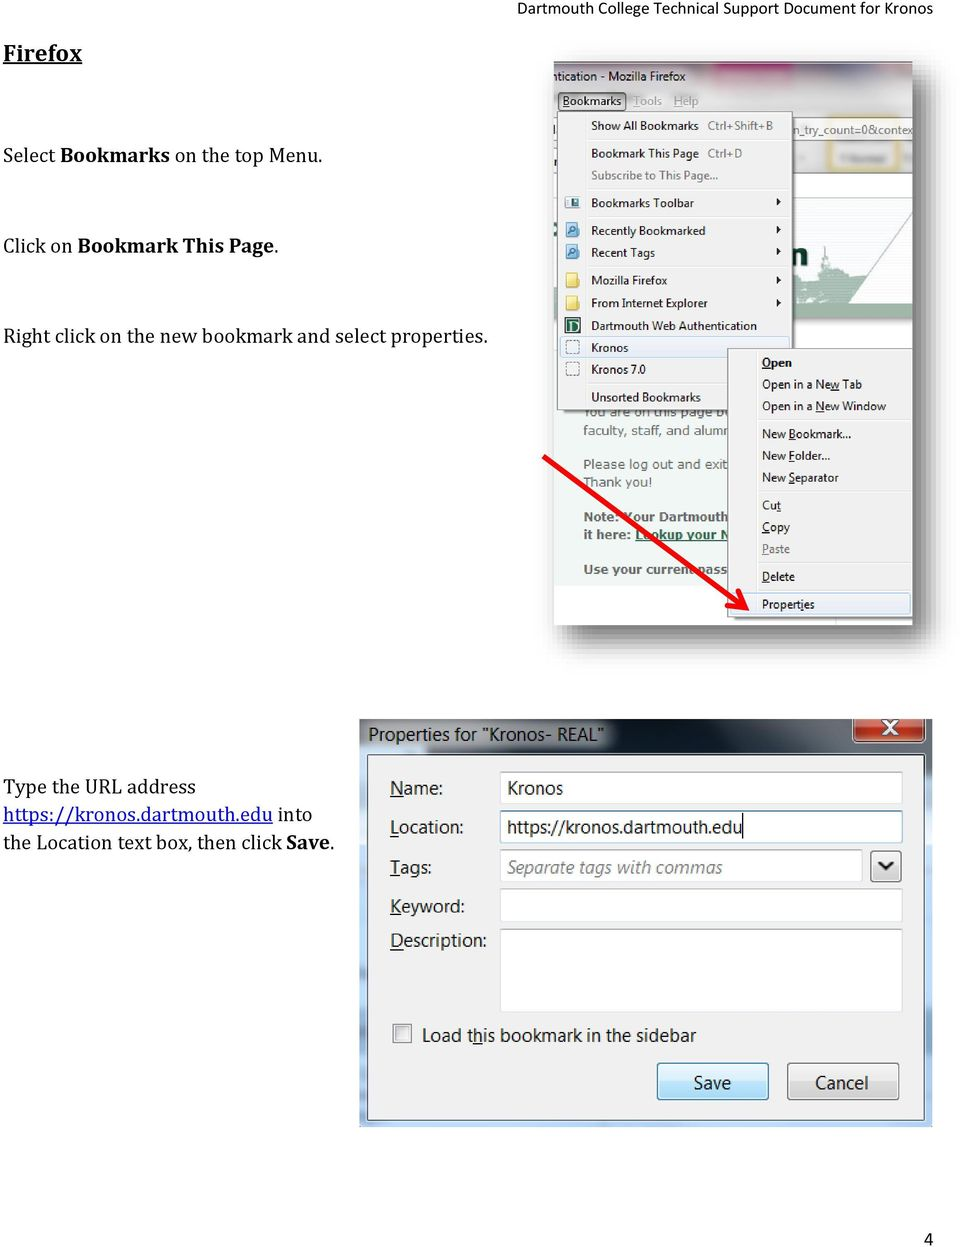 Right click on the new bookmark and select properties.